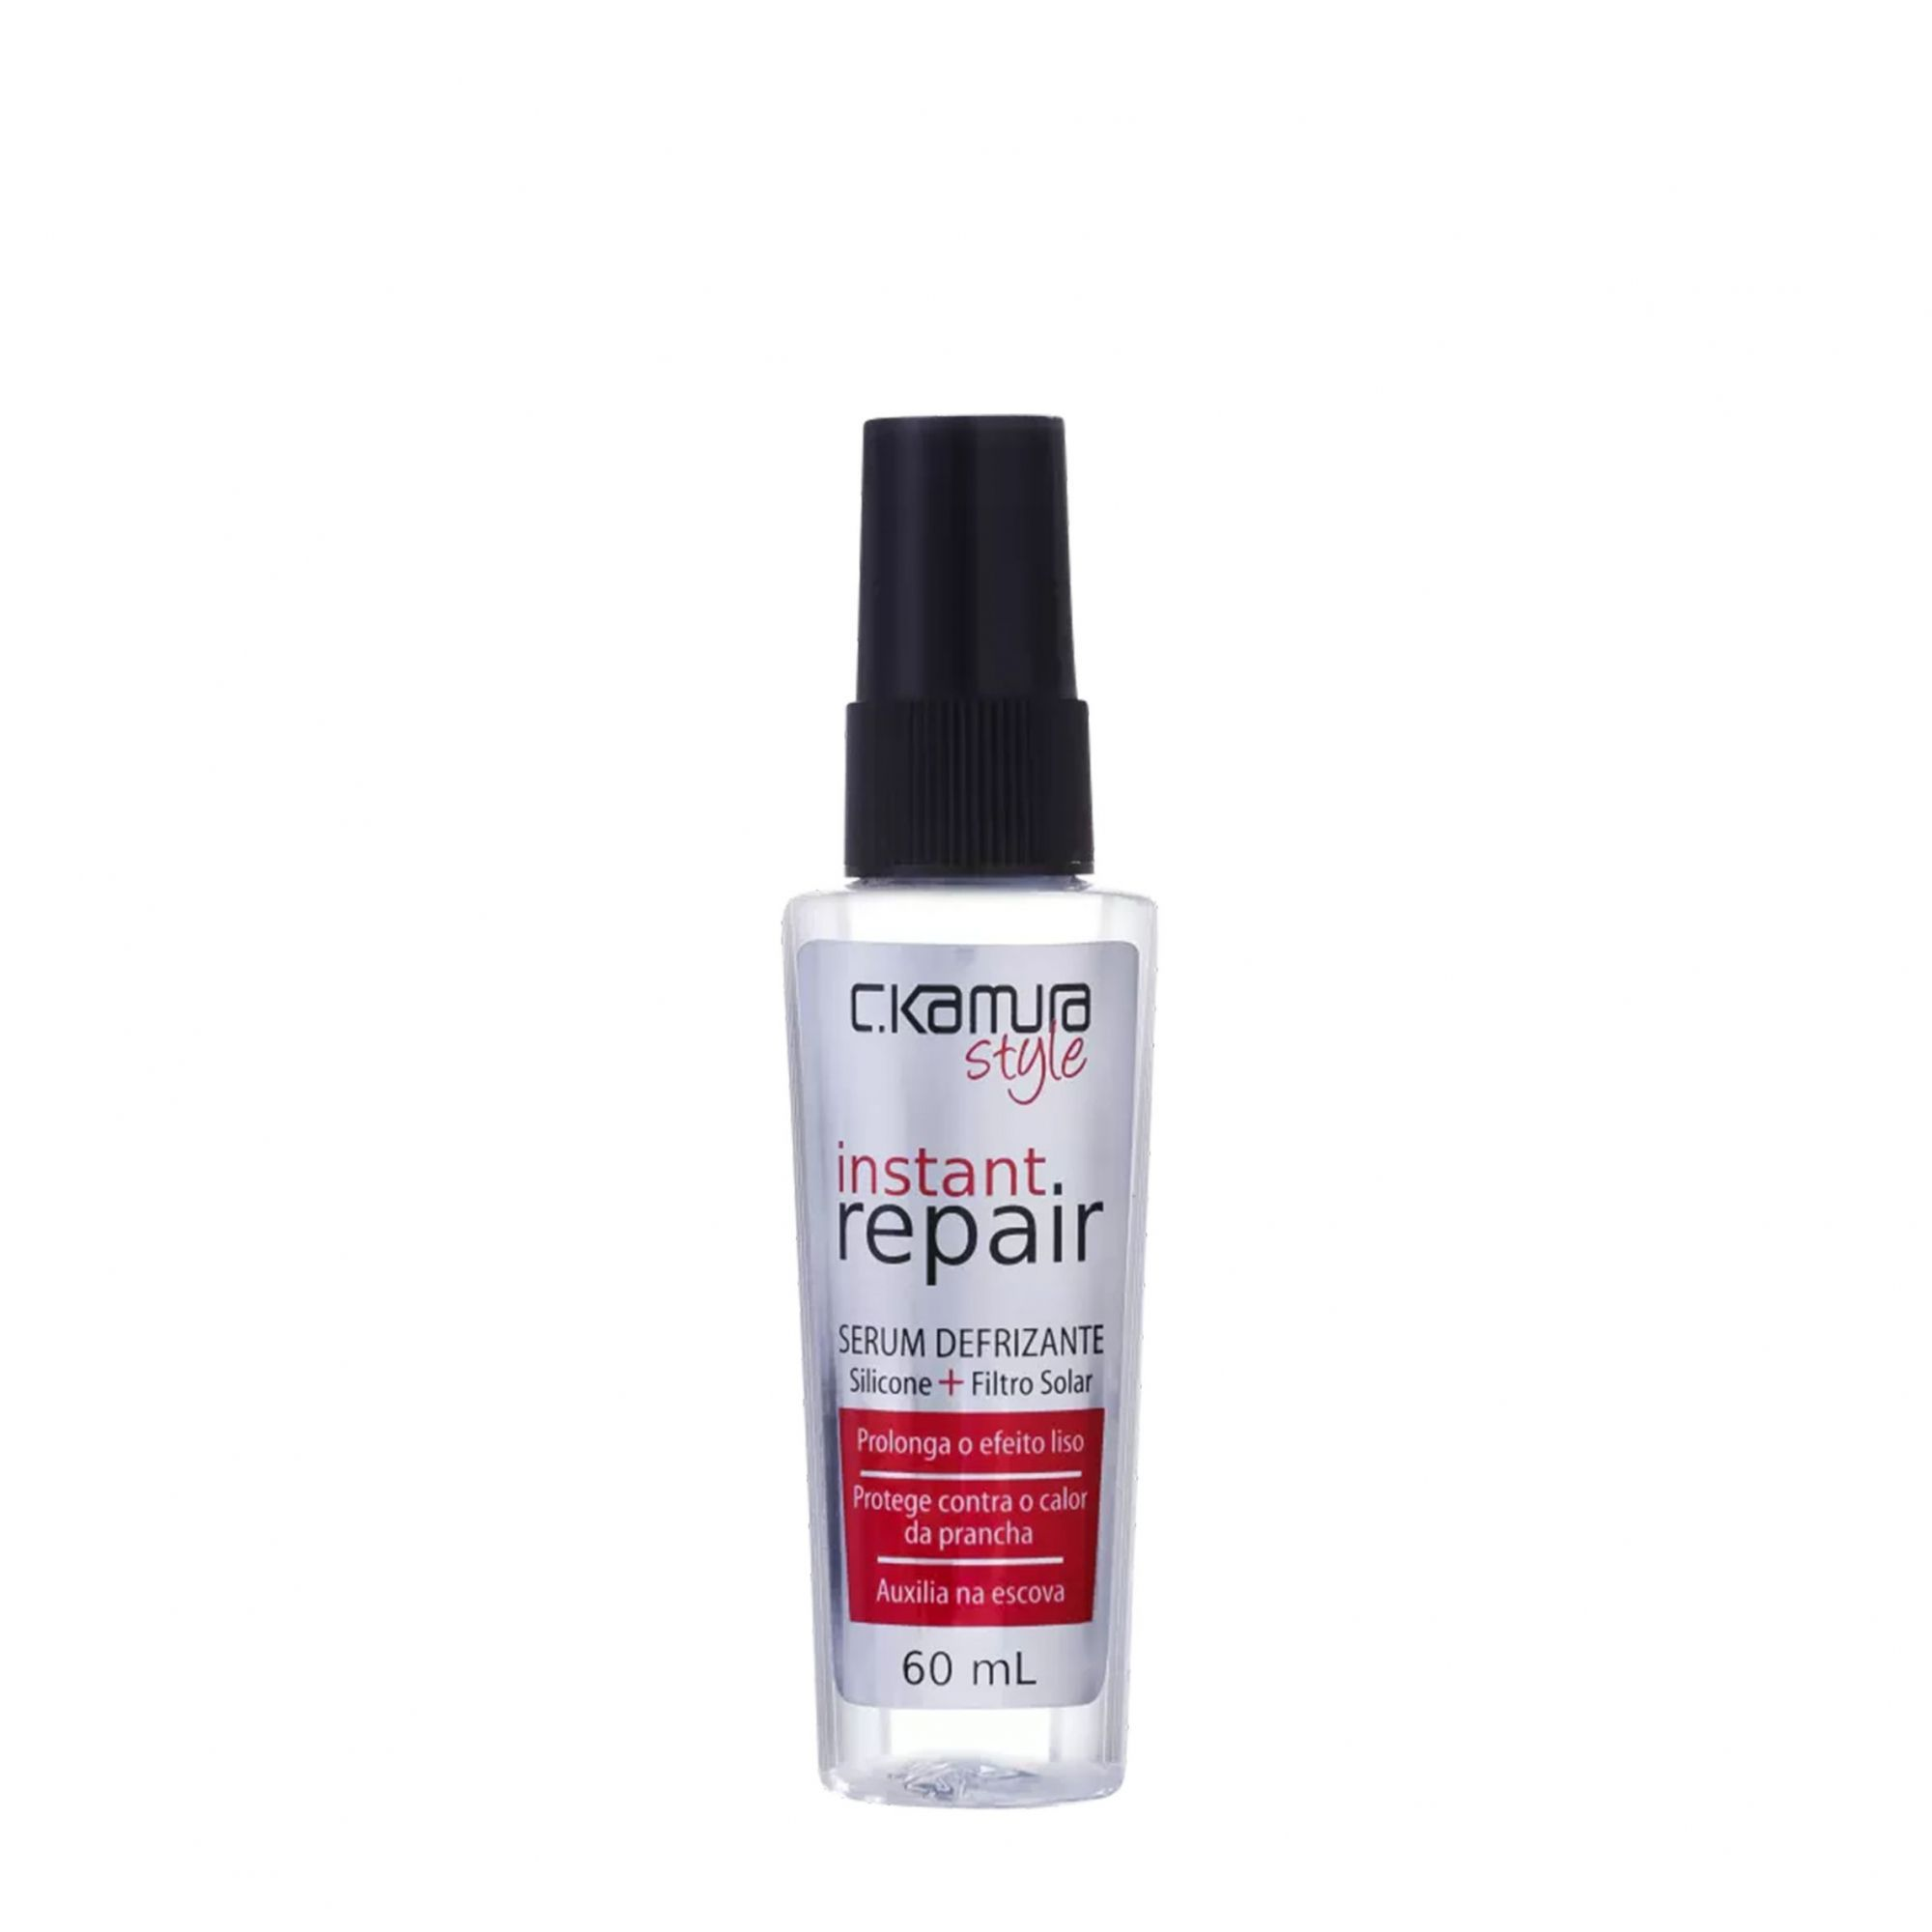 C.Kamura Style Instant Repair Sérum Anti-Frizz 60ml.